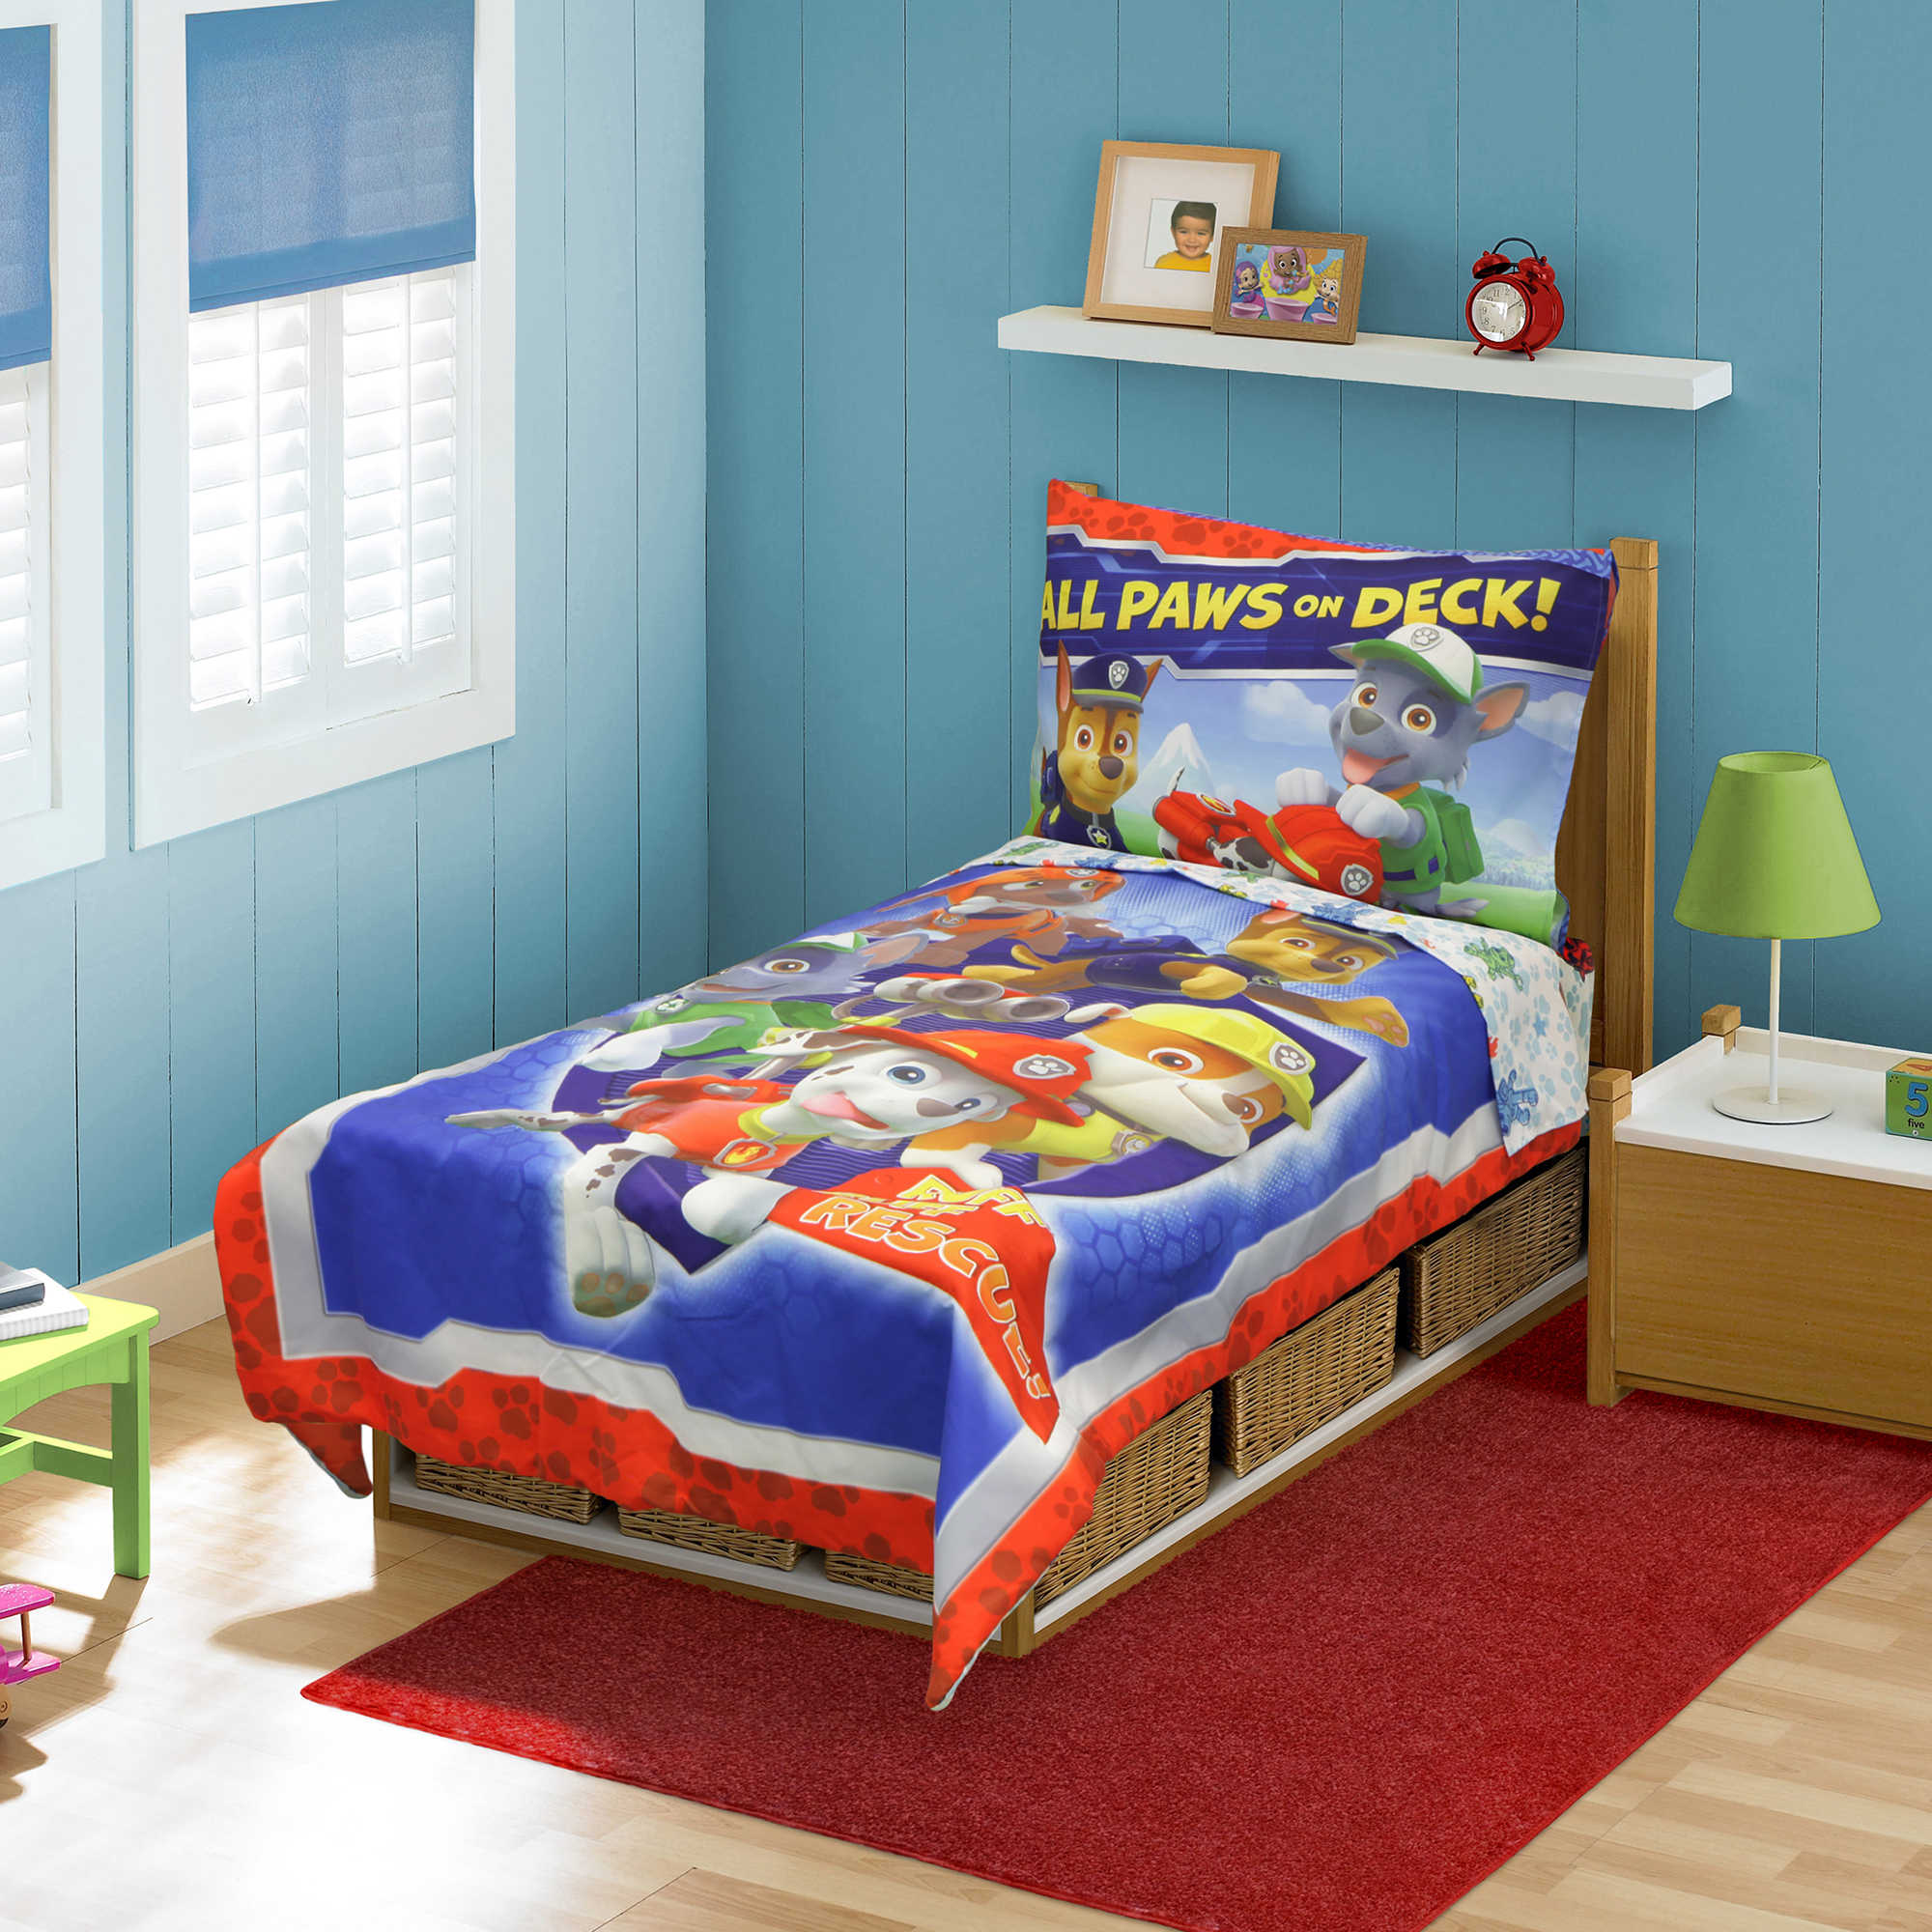 Unique Superhero Bedding Sets With Side Table And Red Rug